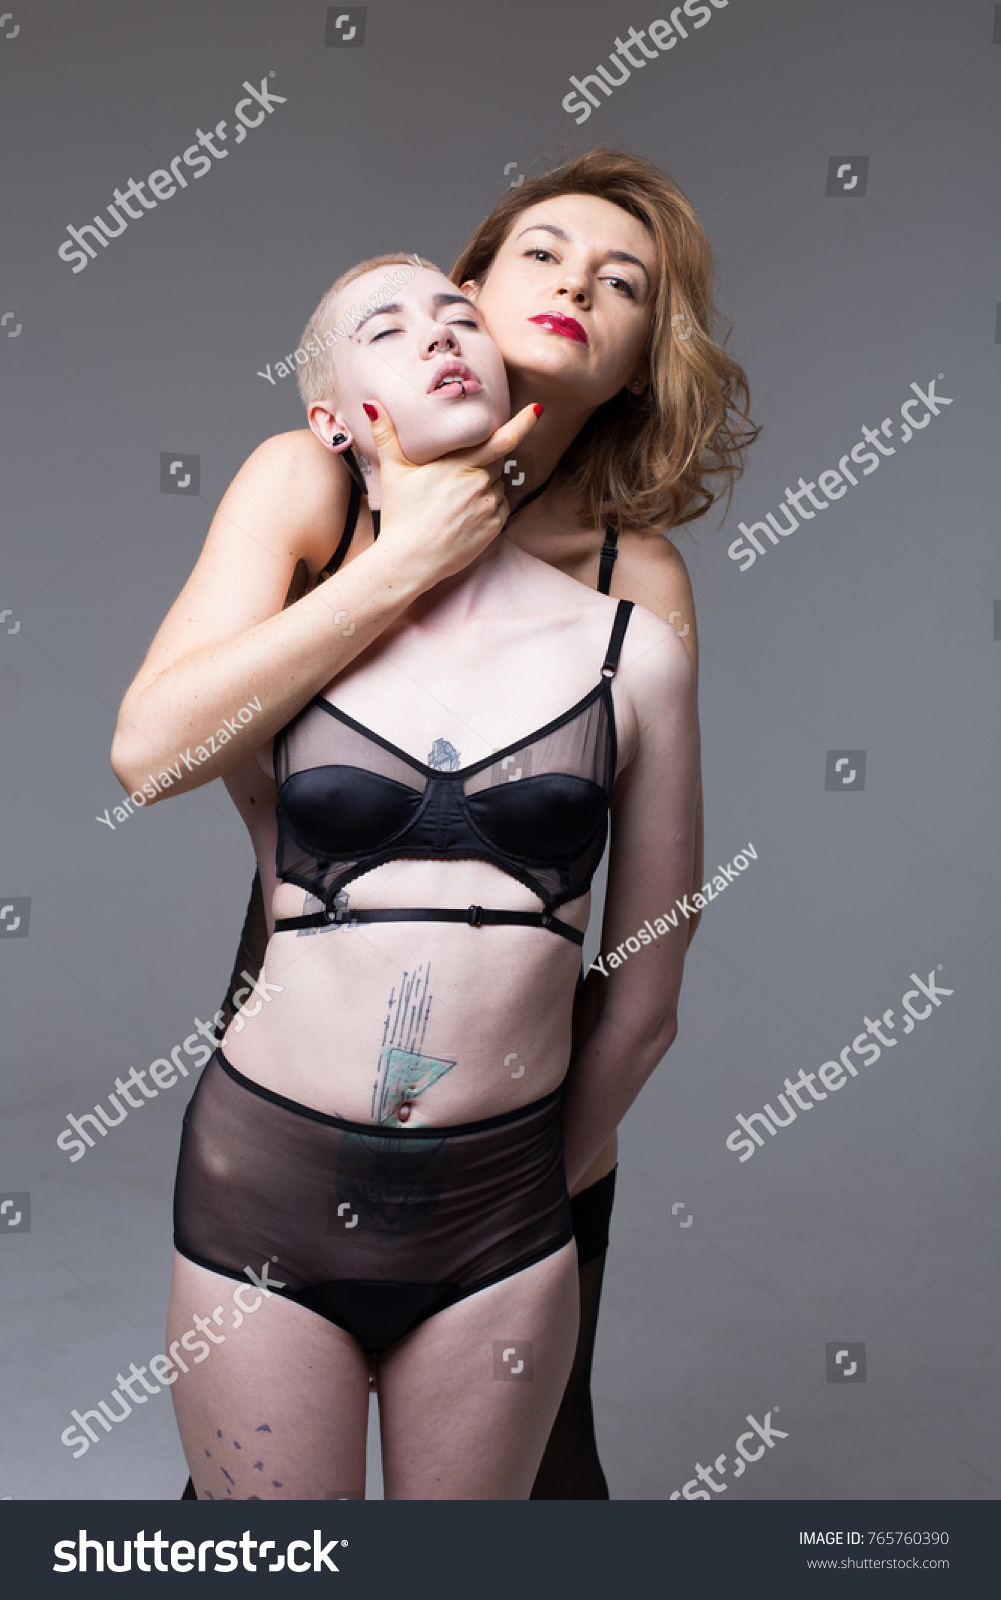 Newest bdsm sites for dominant masters and submissive slaves